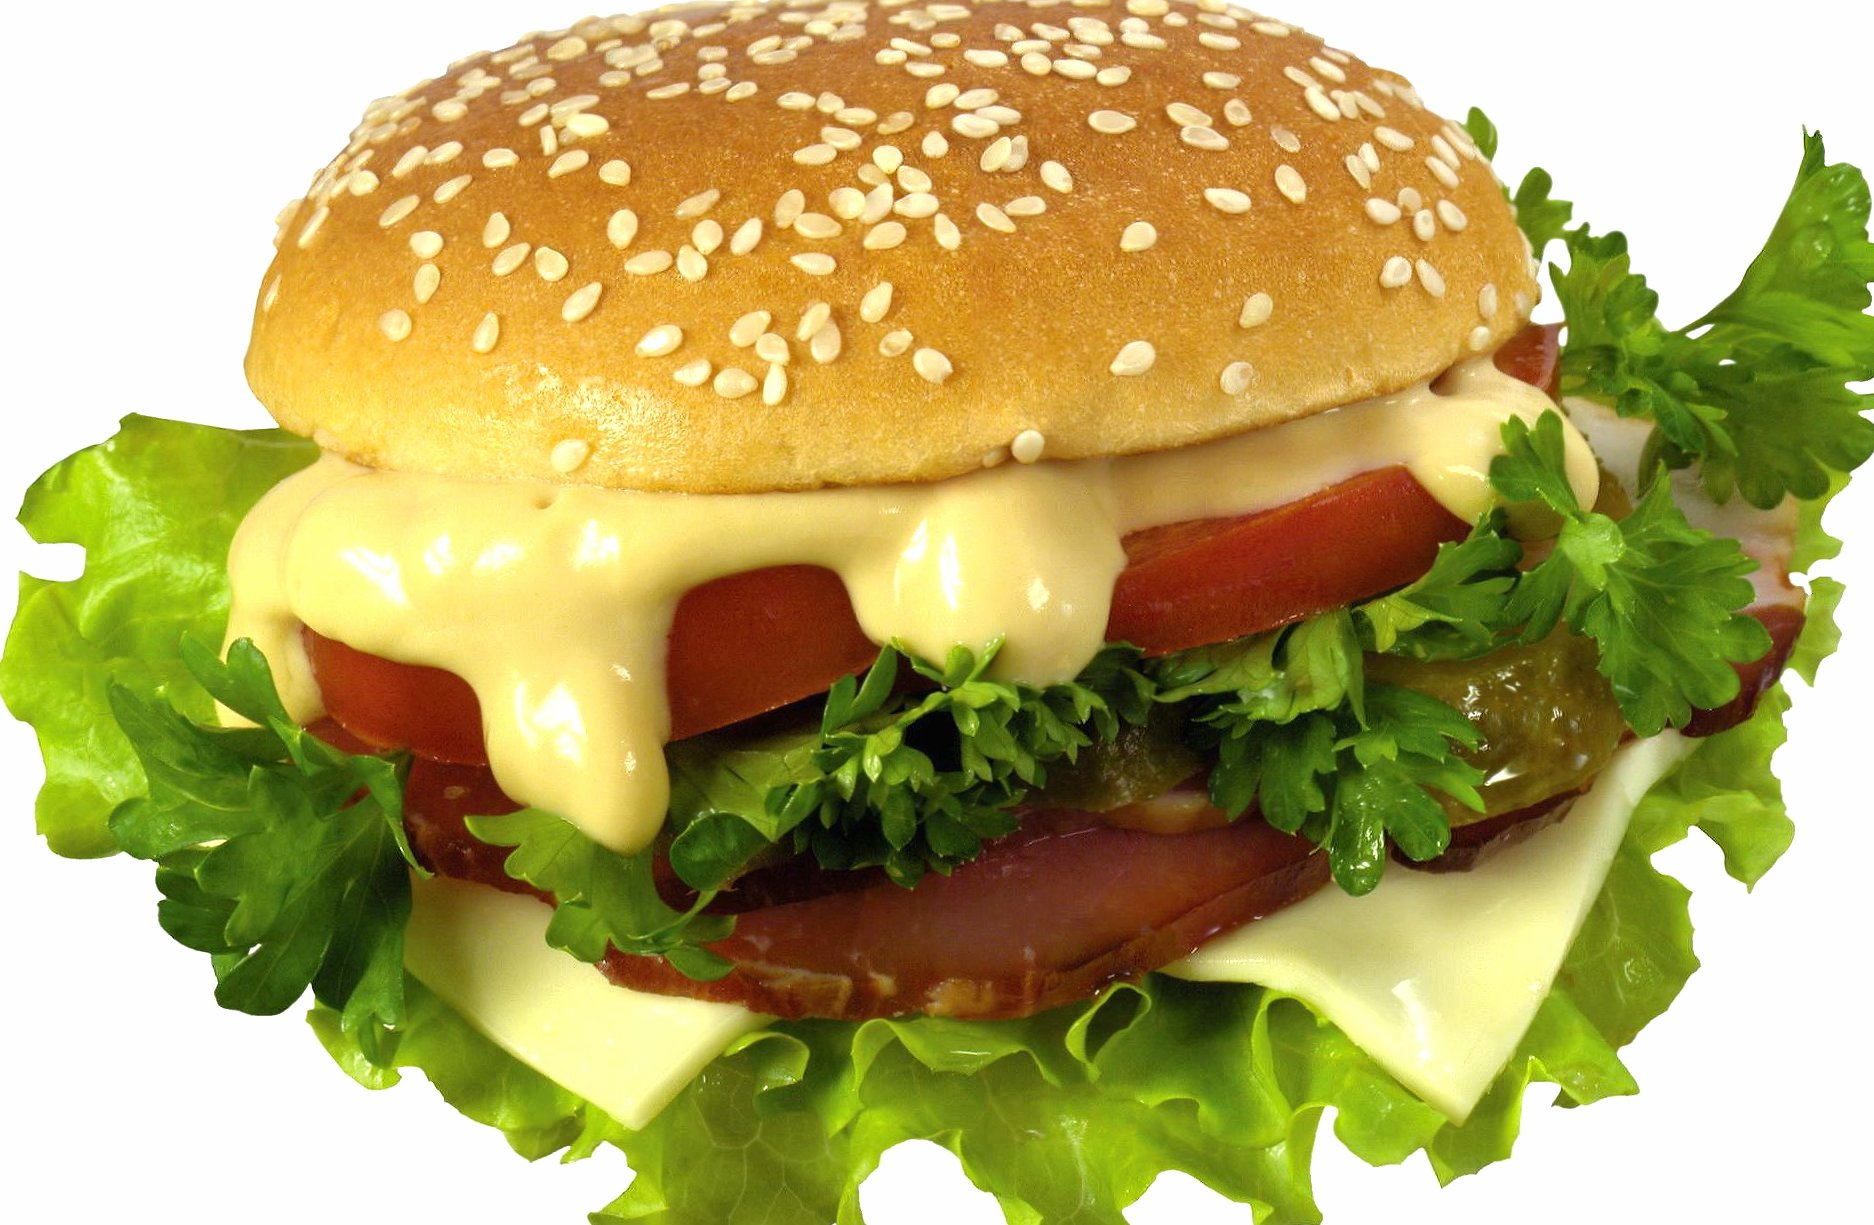 Good hamburger at 1024 x 1024 iPad size wallpapers HD quality